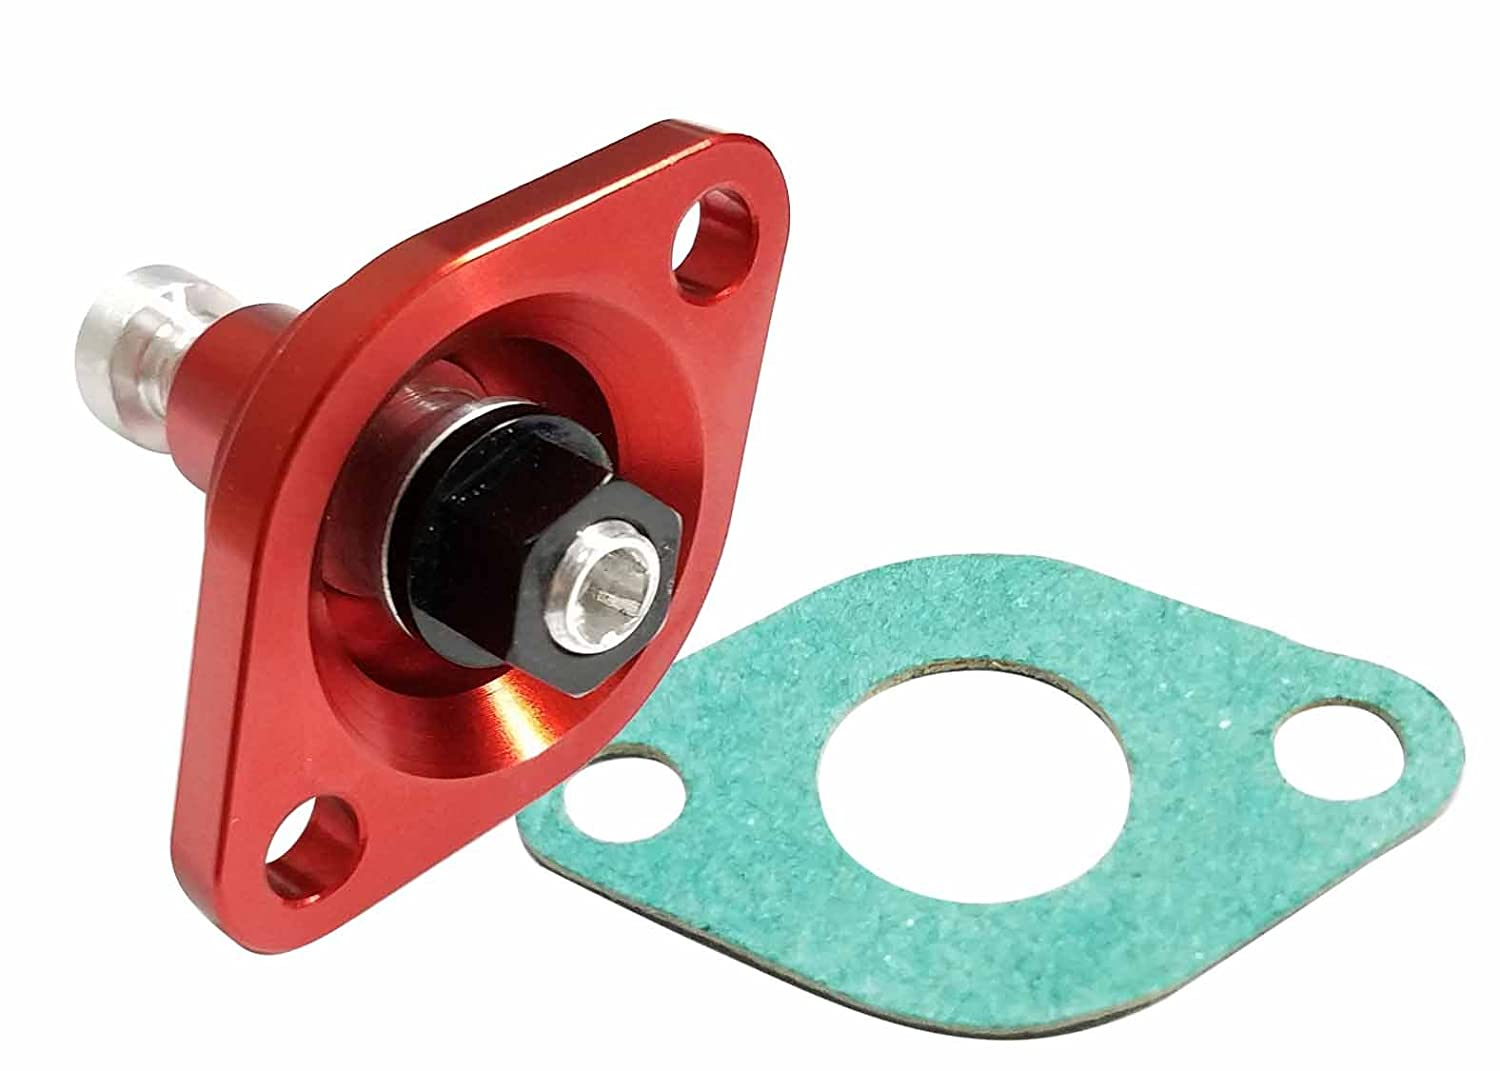 Yana Shiki USA CT-101 Red Manual Cam Chain Tensioner (Red for Honda CRF), 1 Pack